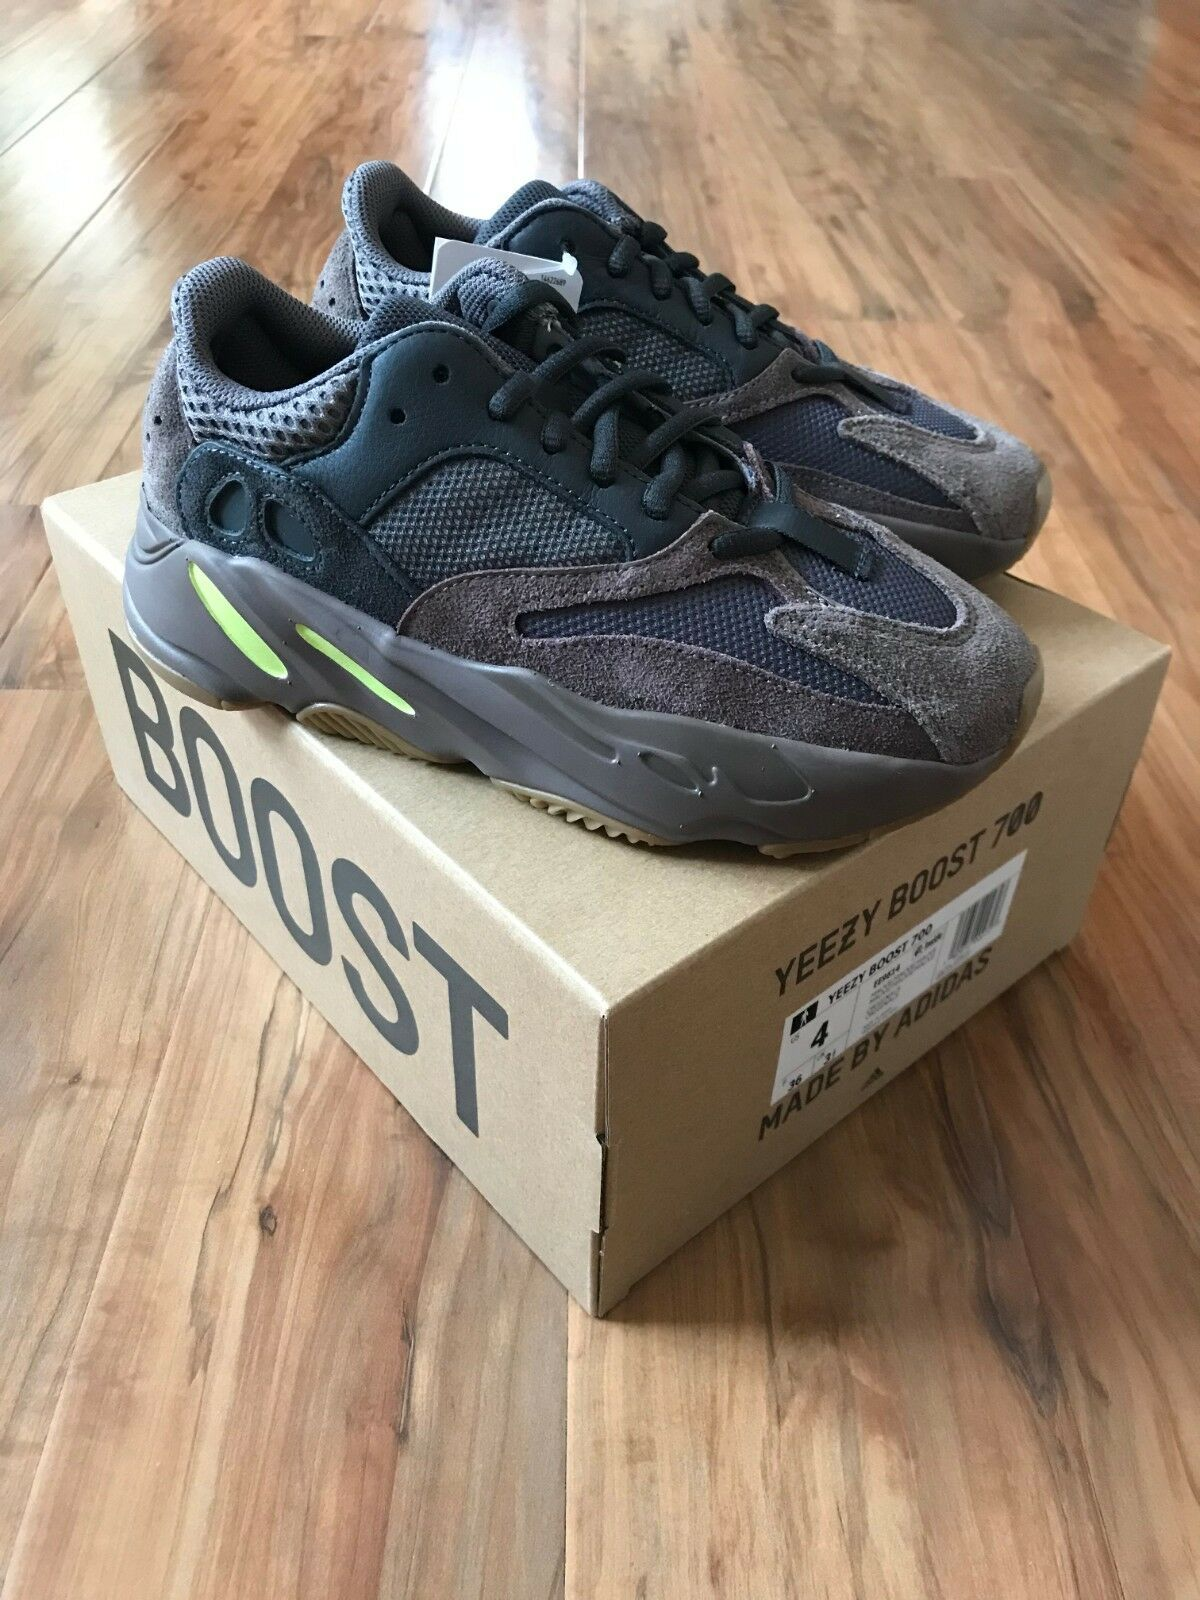 Adidas Yeezy Boost 700 Mauve - Size 4 US - Brand New